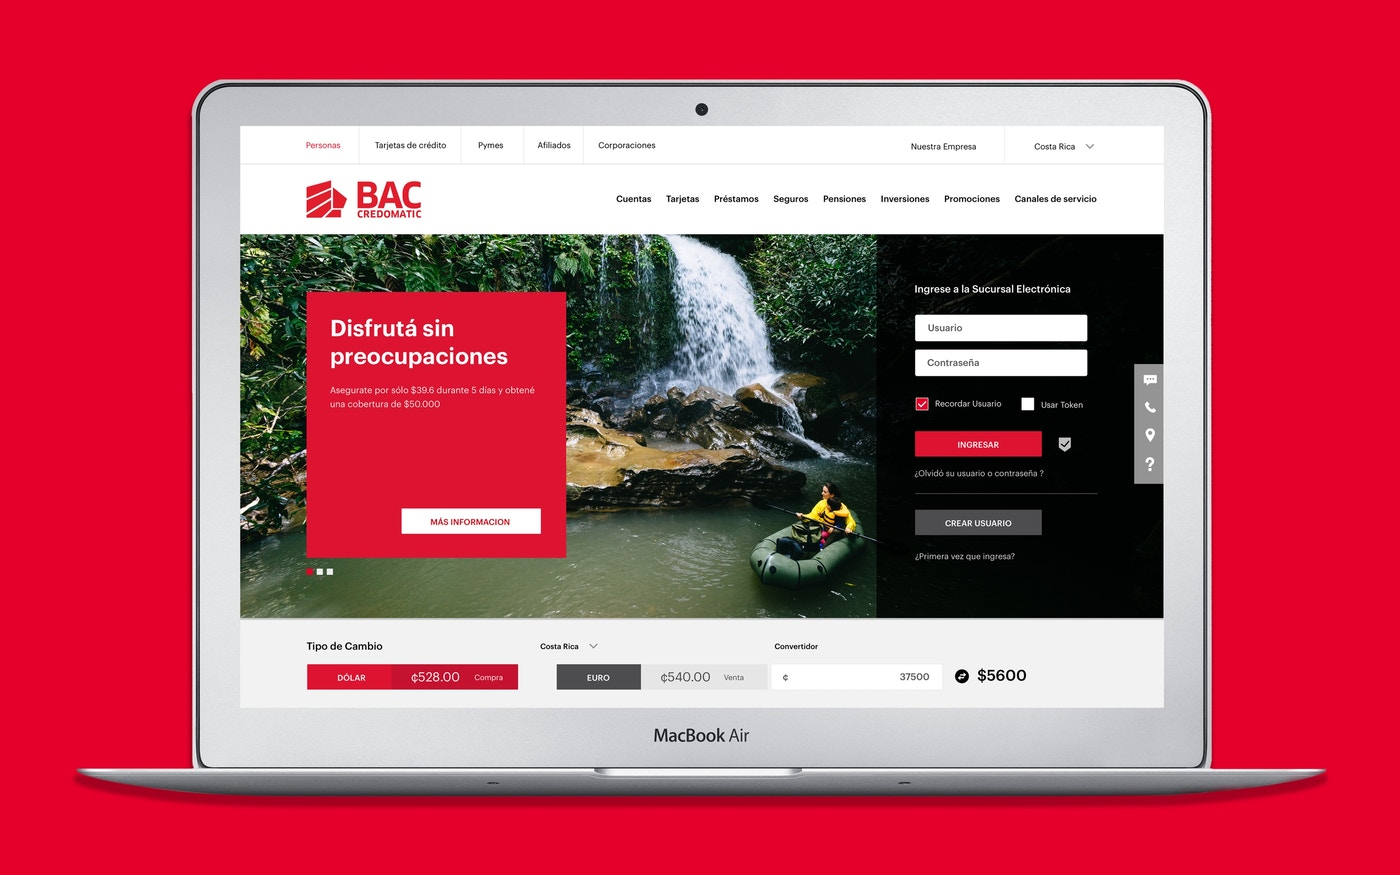 BAC Credomatic website design